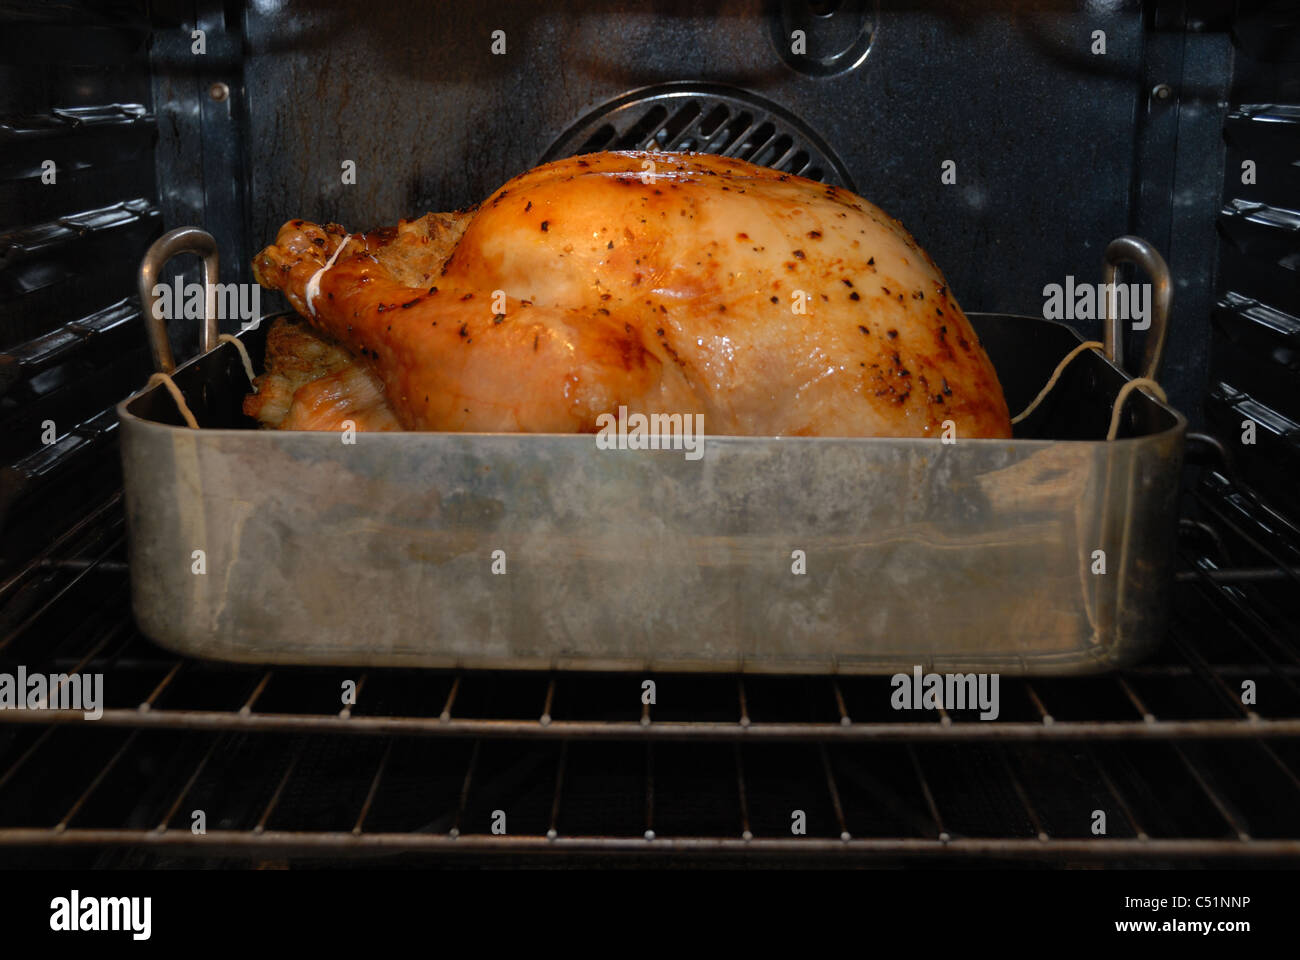 a turkey cooking in an open roasting pan inside an oven